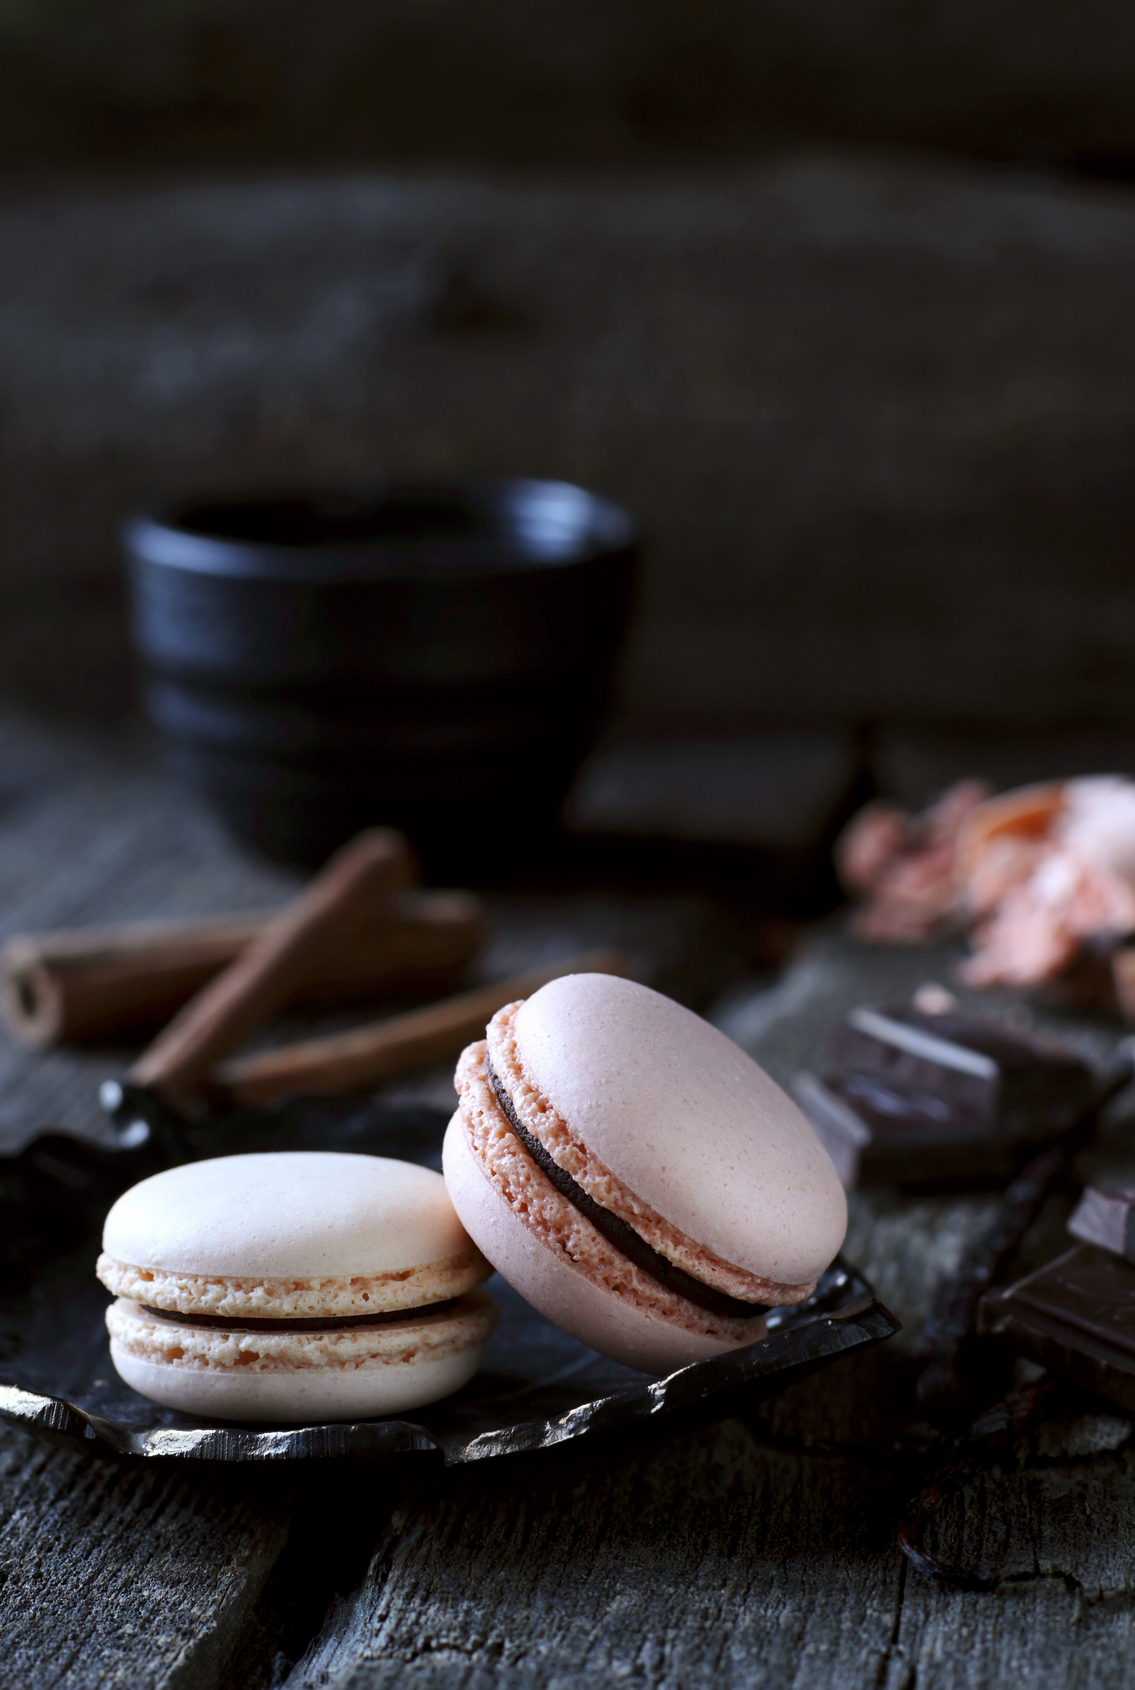 two chocolate macaroon on a dark background, shot with natural light